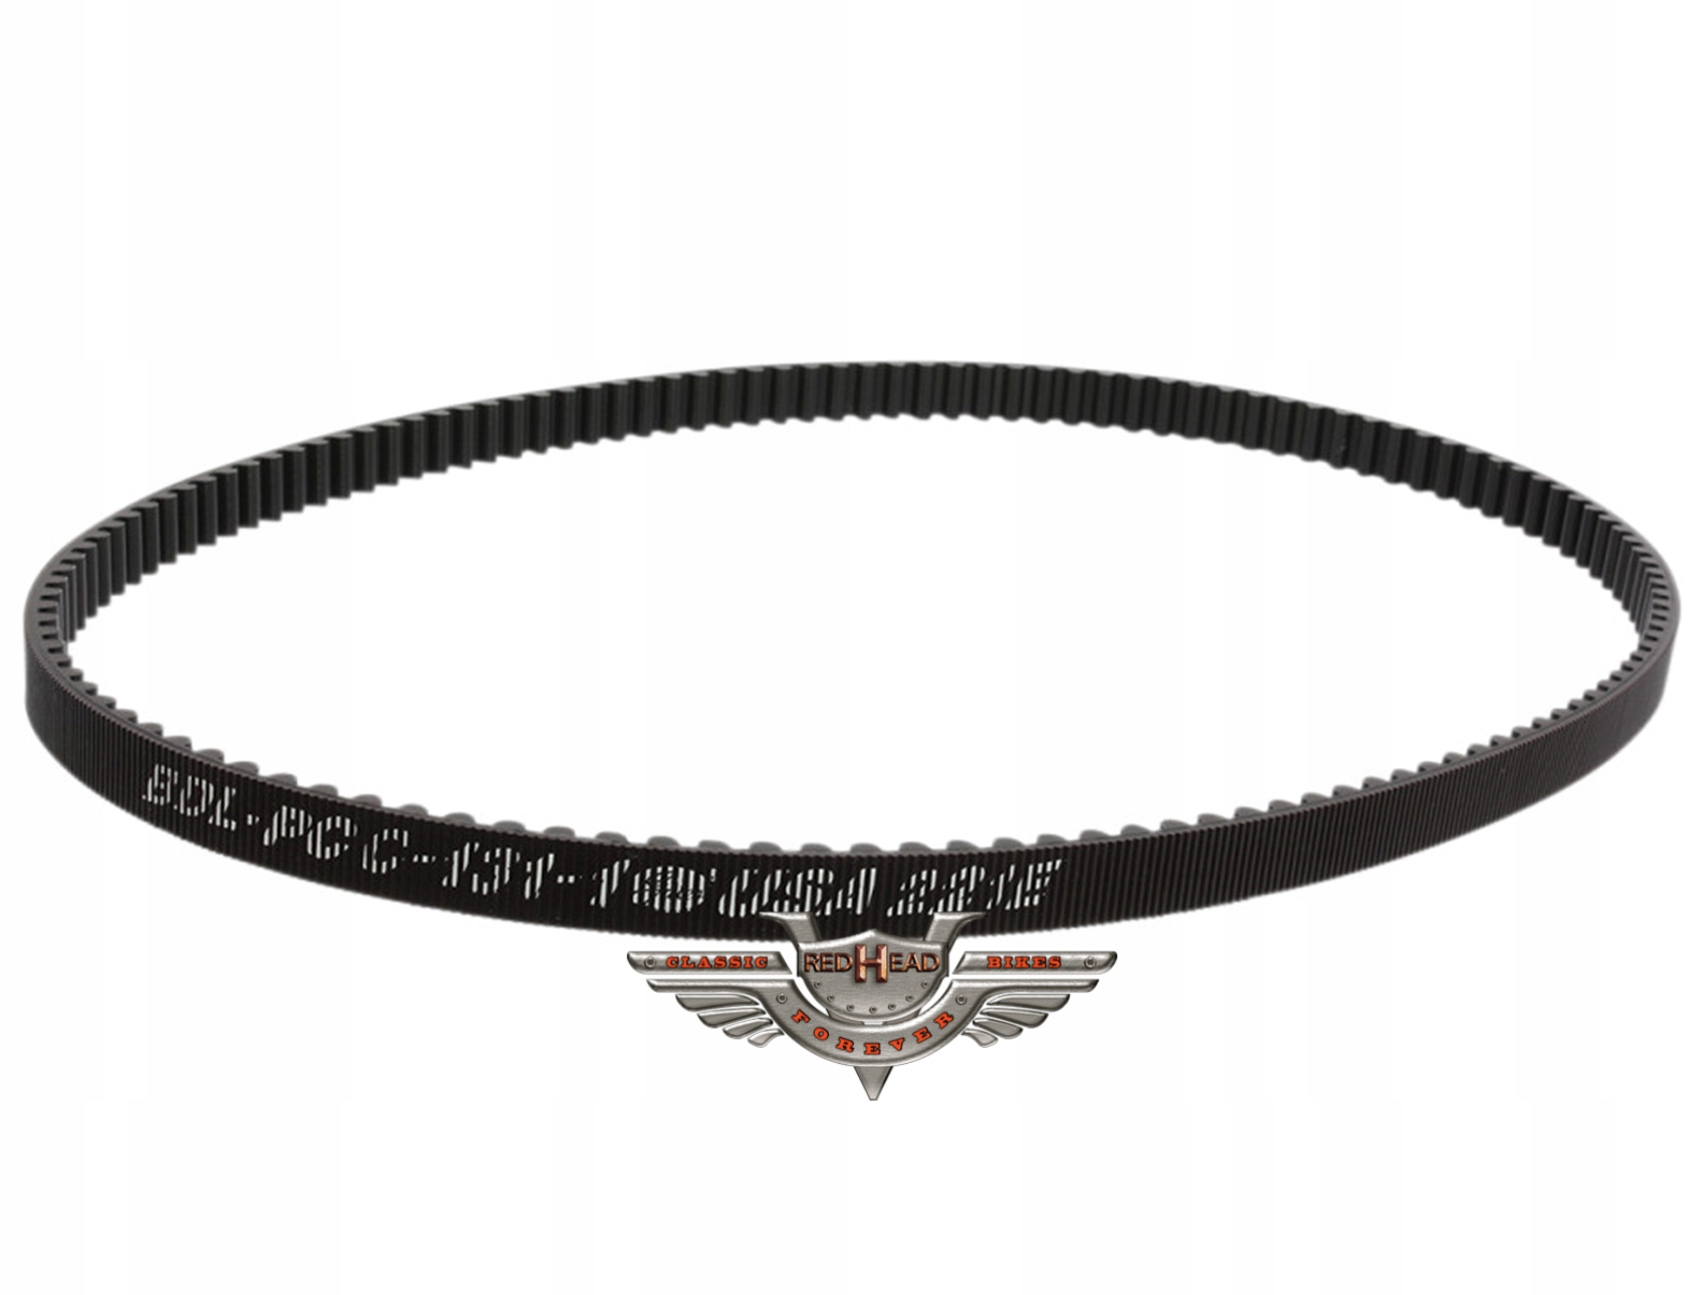 Harley Dyna Wide Super Glide Propulsion Belt 07 17 Xdalys Lt